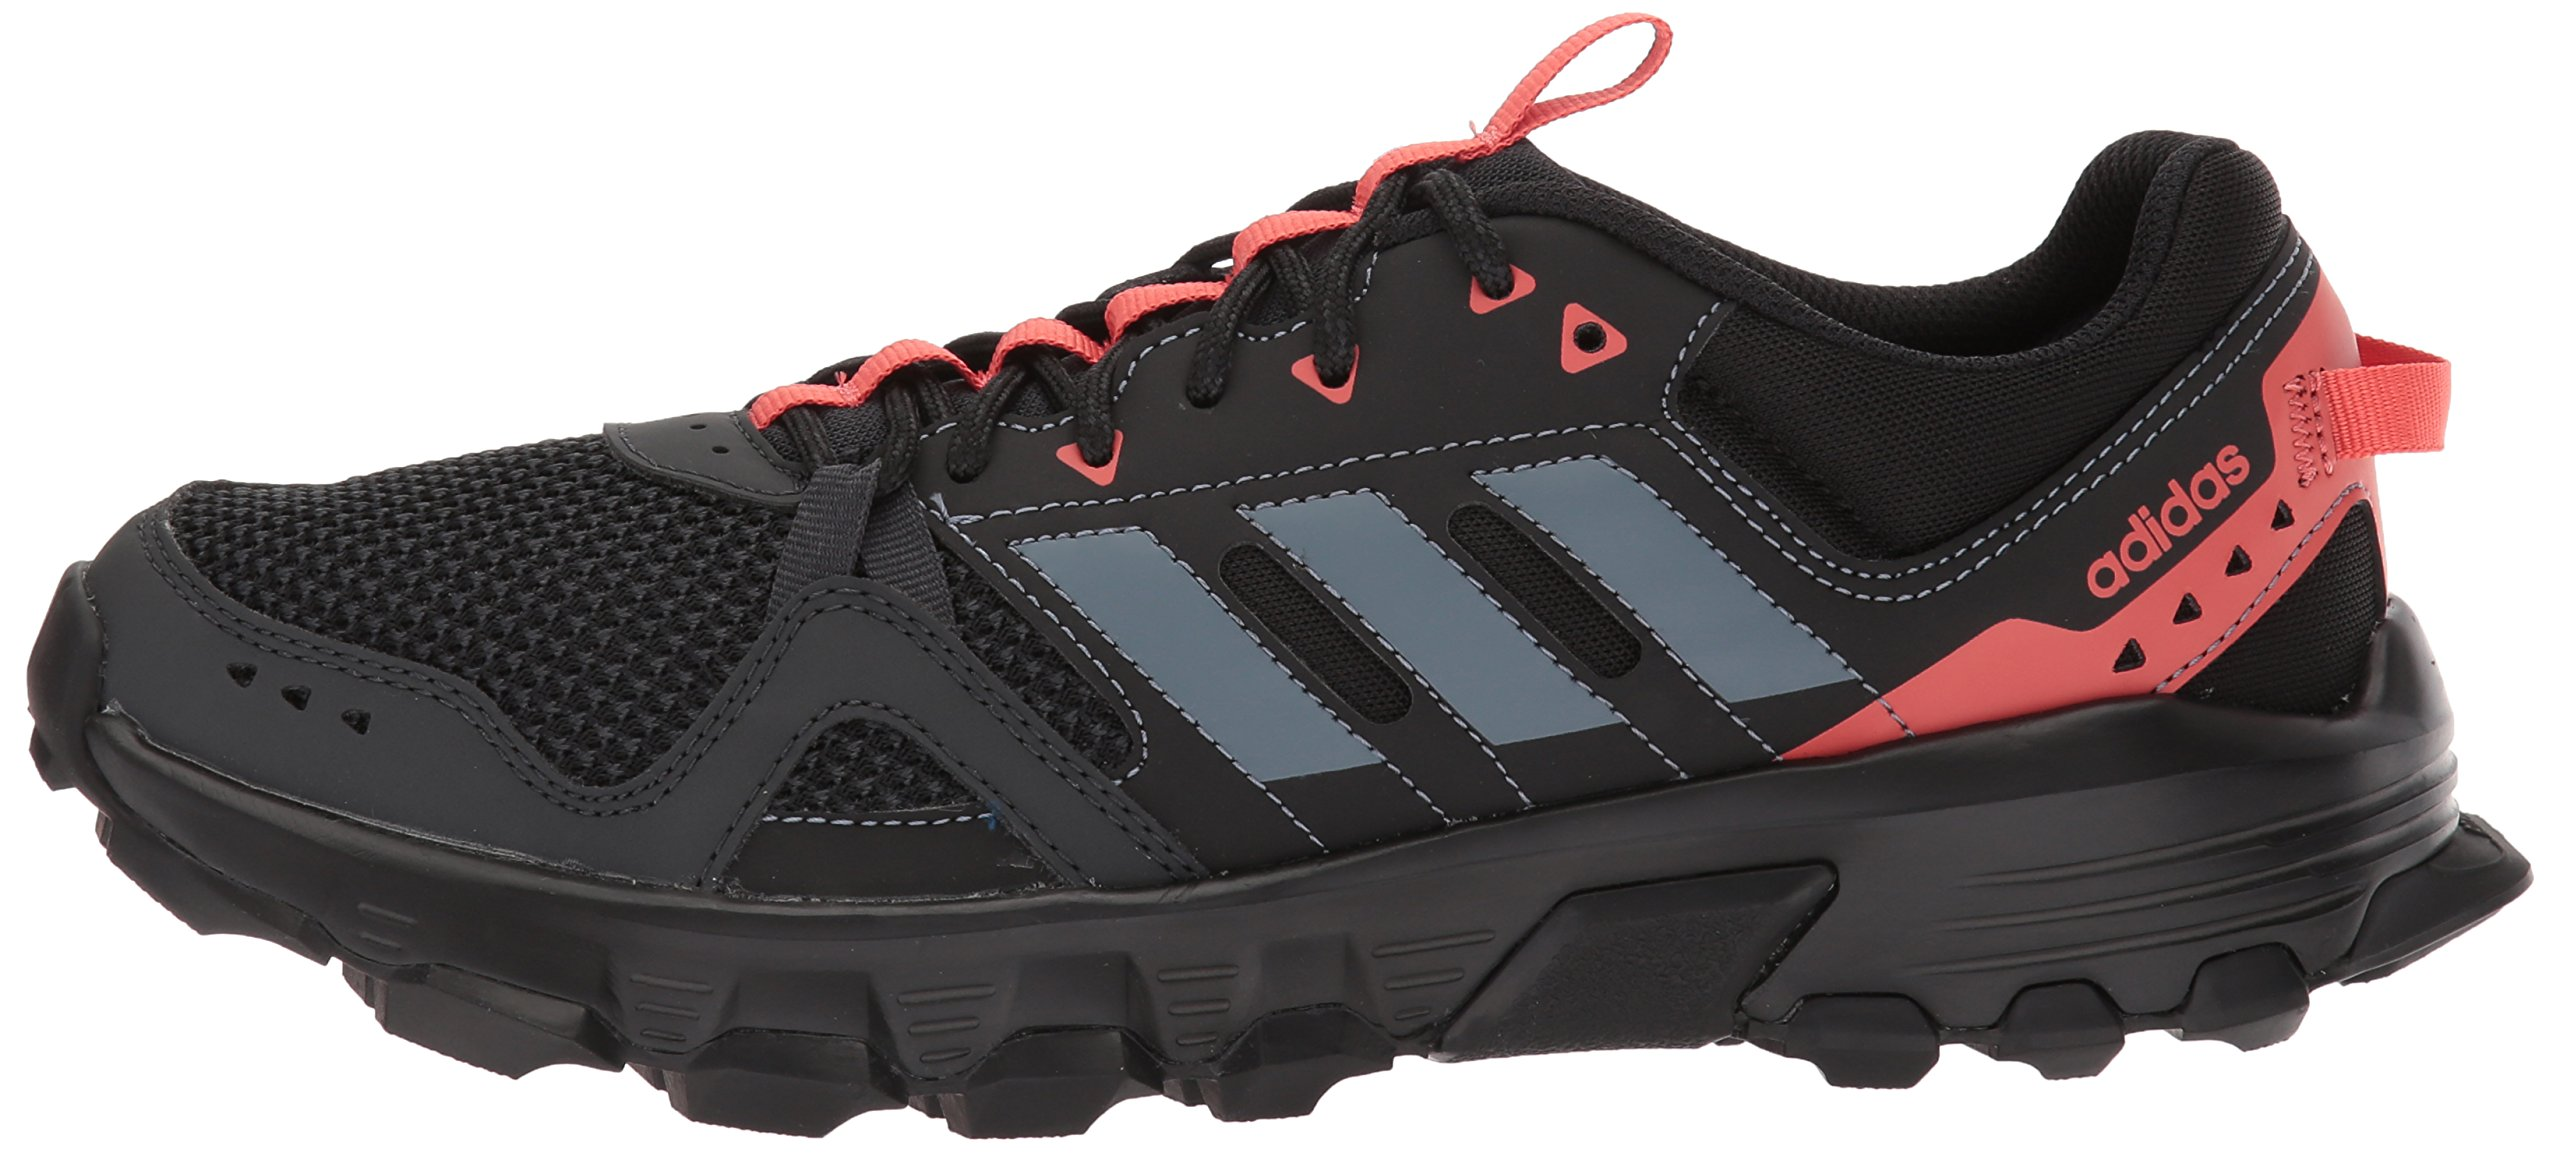 adidas Women's Rockadia w Trail Running Shoe, Carbon/Raw Steel/Trace Scarlet, 6 M US by adidas (Image #5)